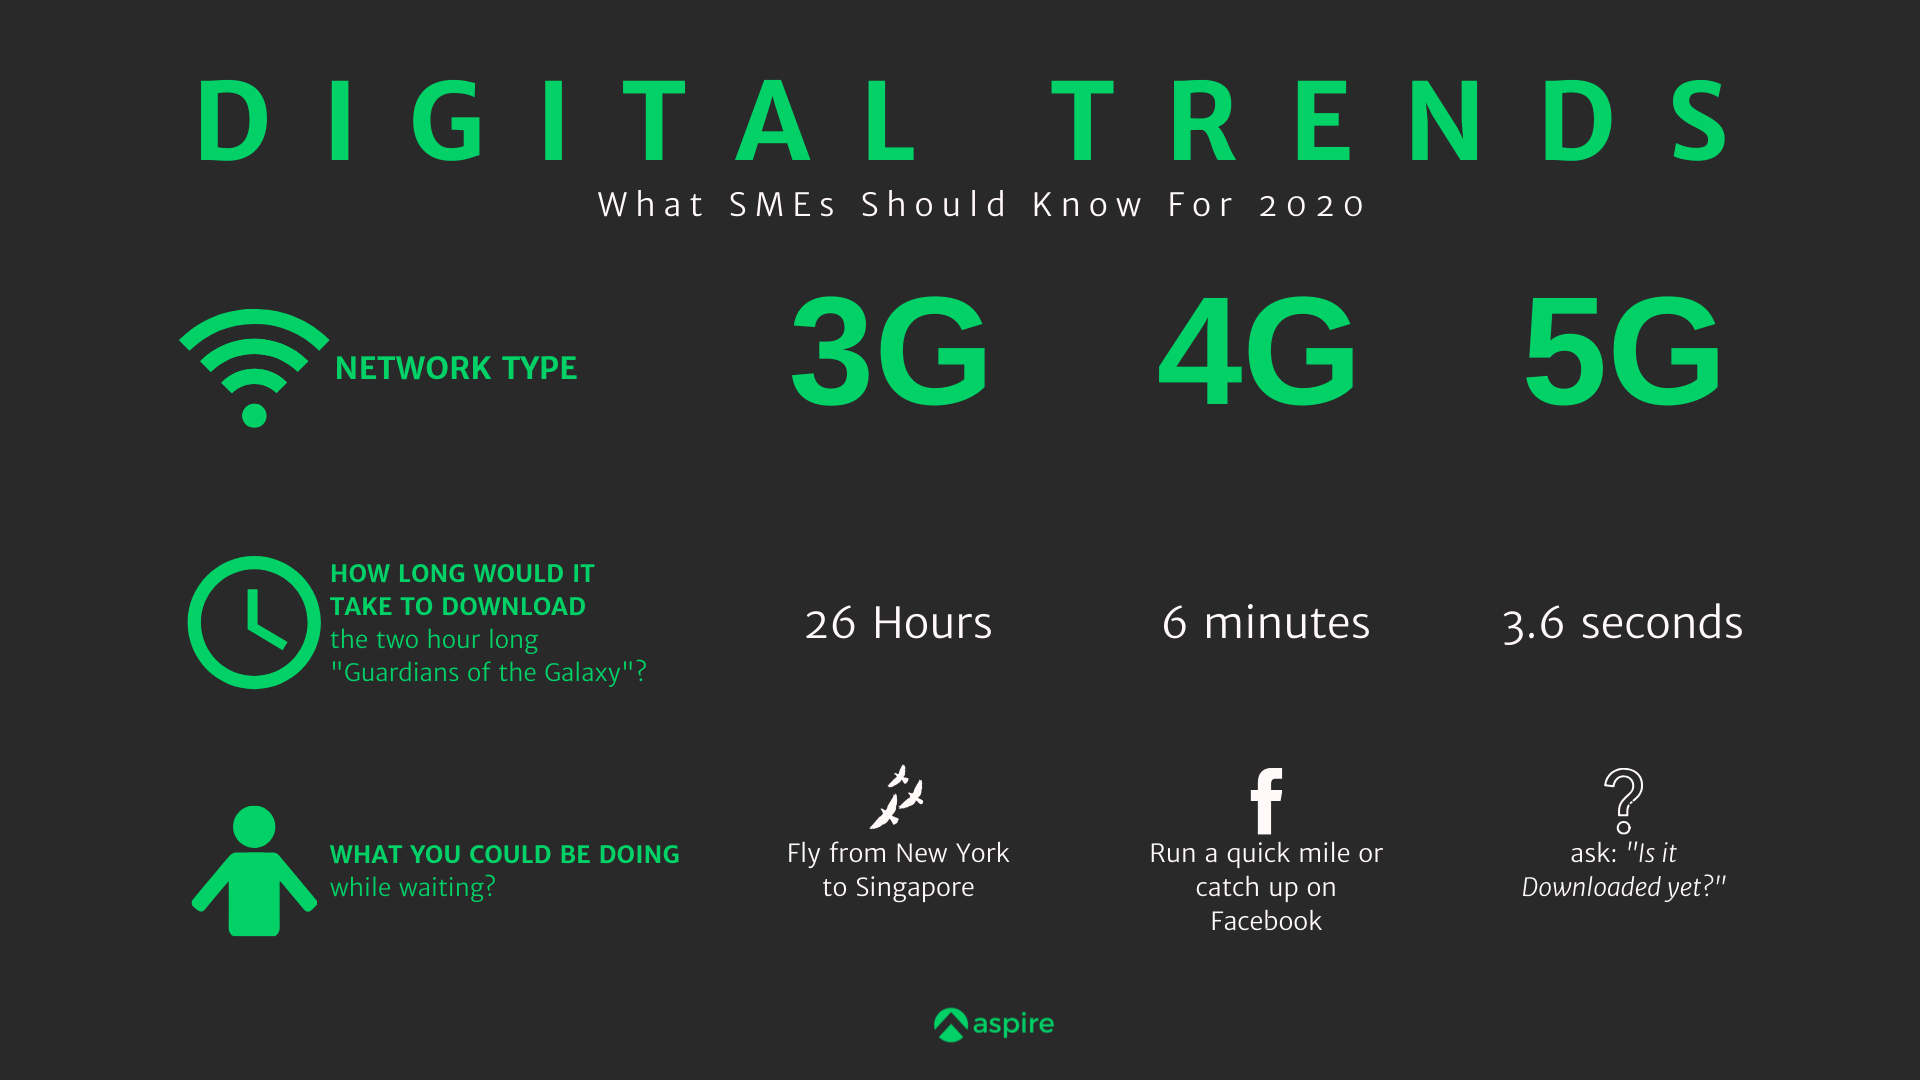 Digital Trends in 2020